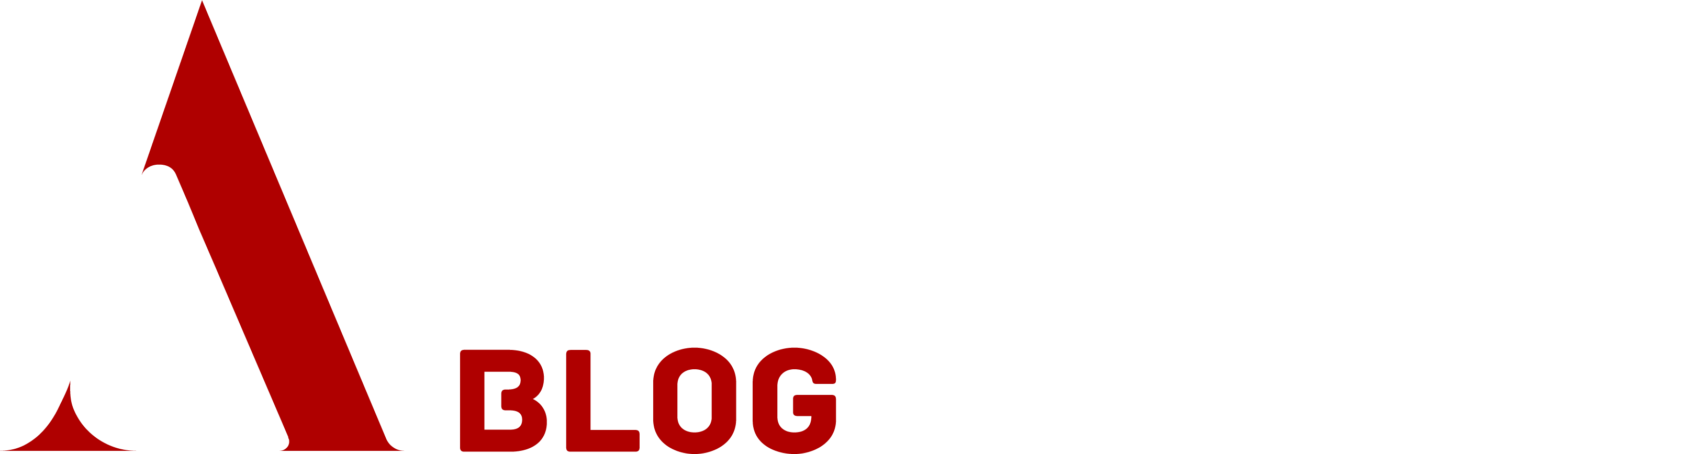 Gambling dealer stories: How we became gambling addicts!